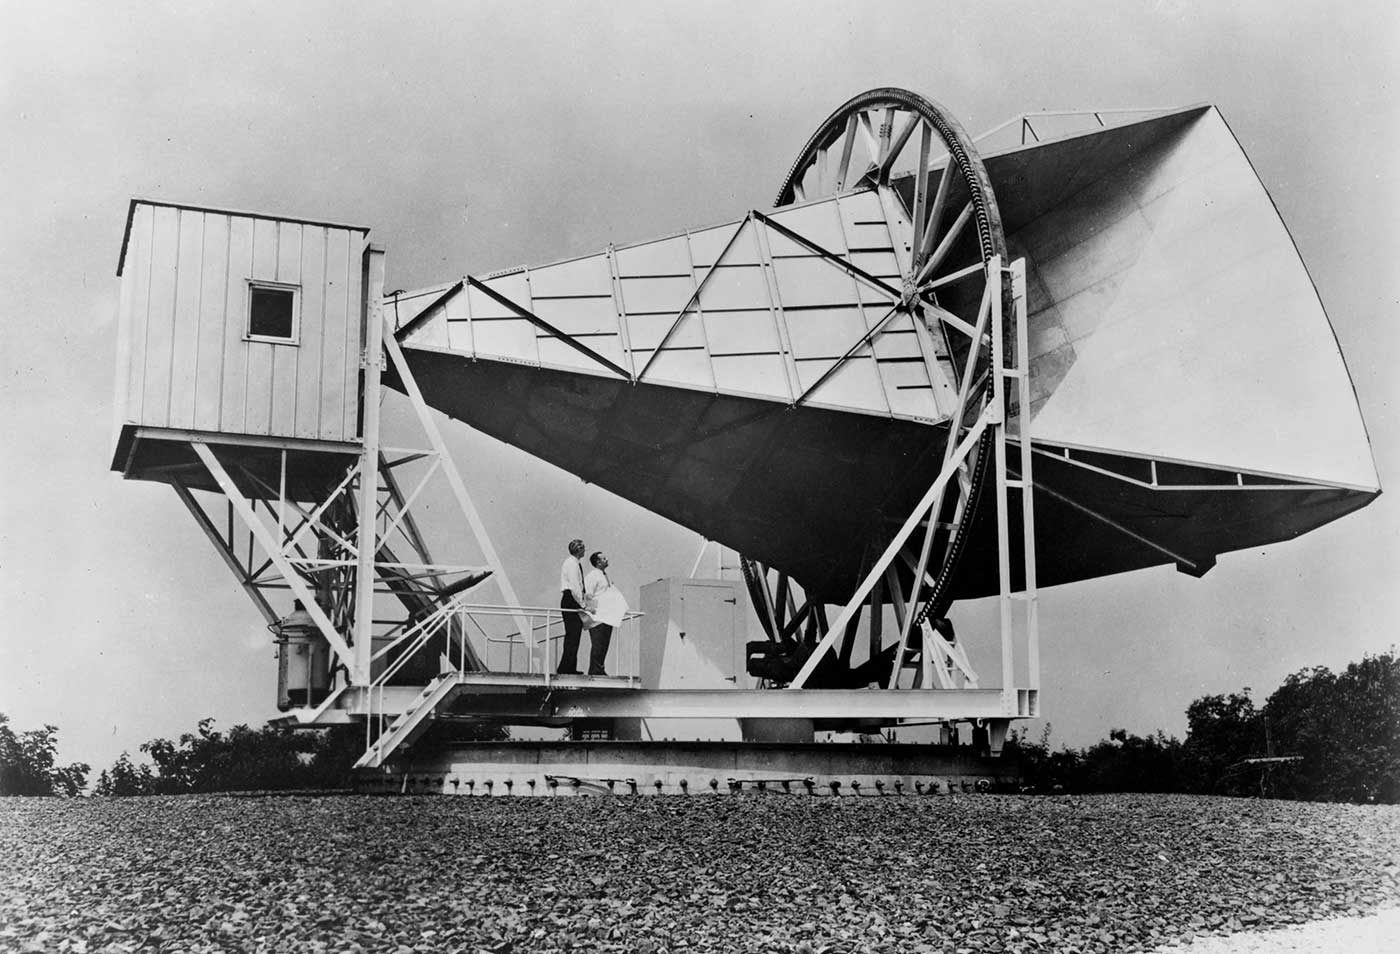 The 15-meter Holmdel horn antenna at Bell Telephone Laboratories in Holmdel, New Jersey, was built in 1959 for pioneering work in communication satellites for the NASA ECHO I.